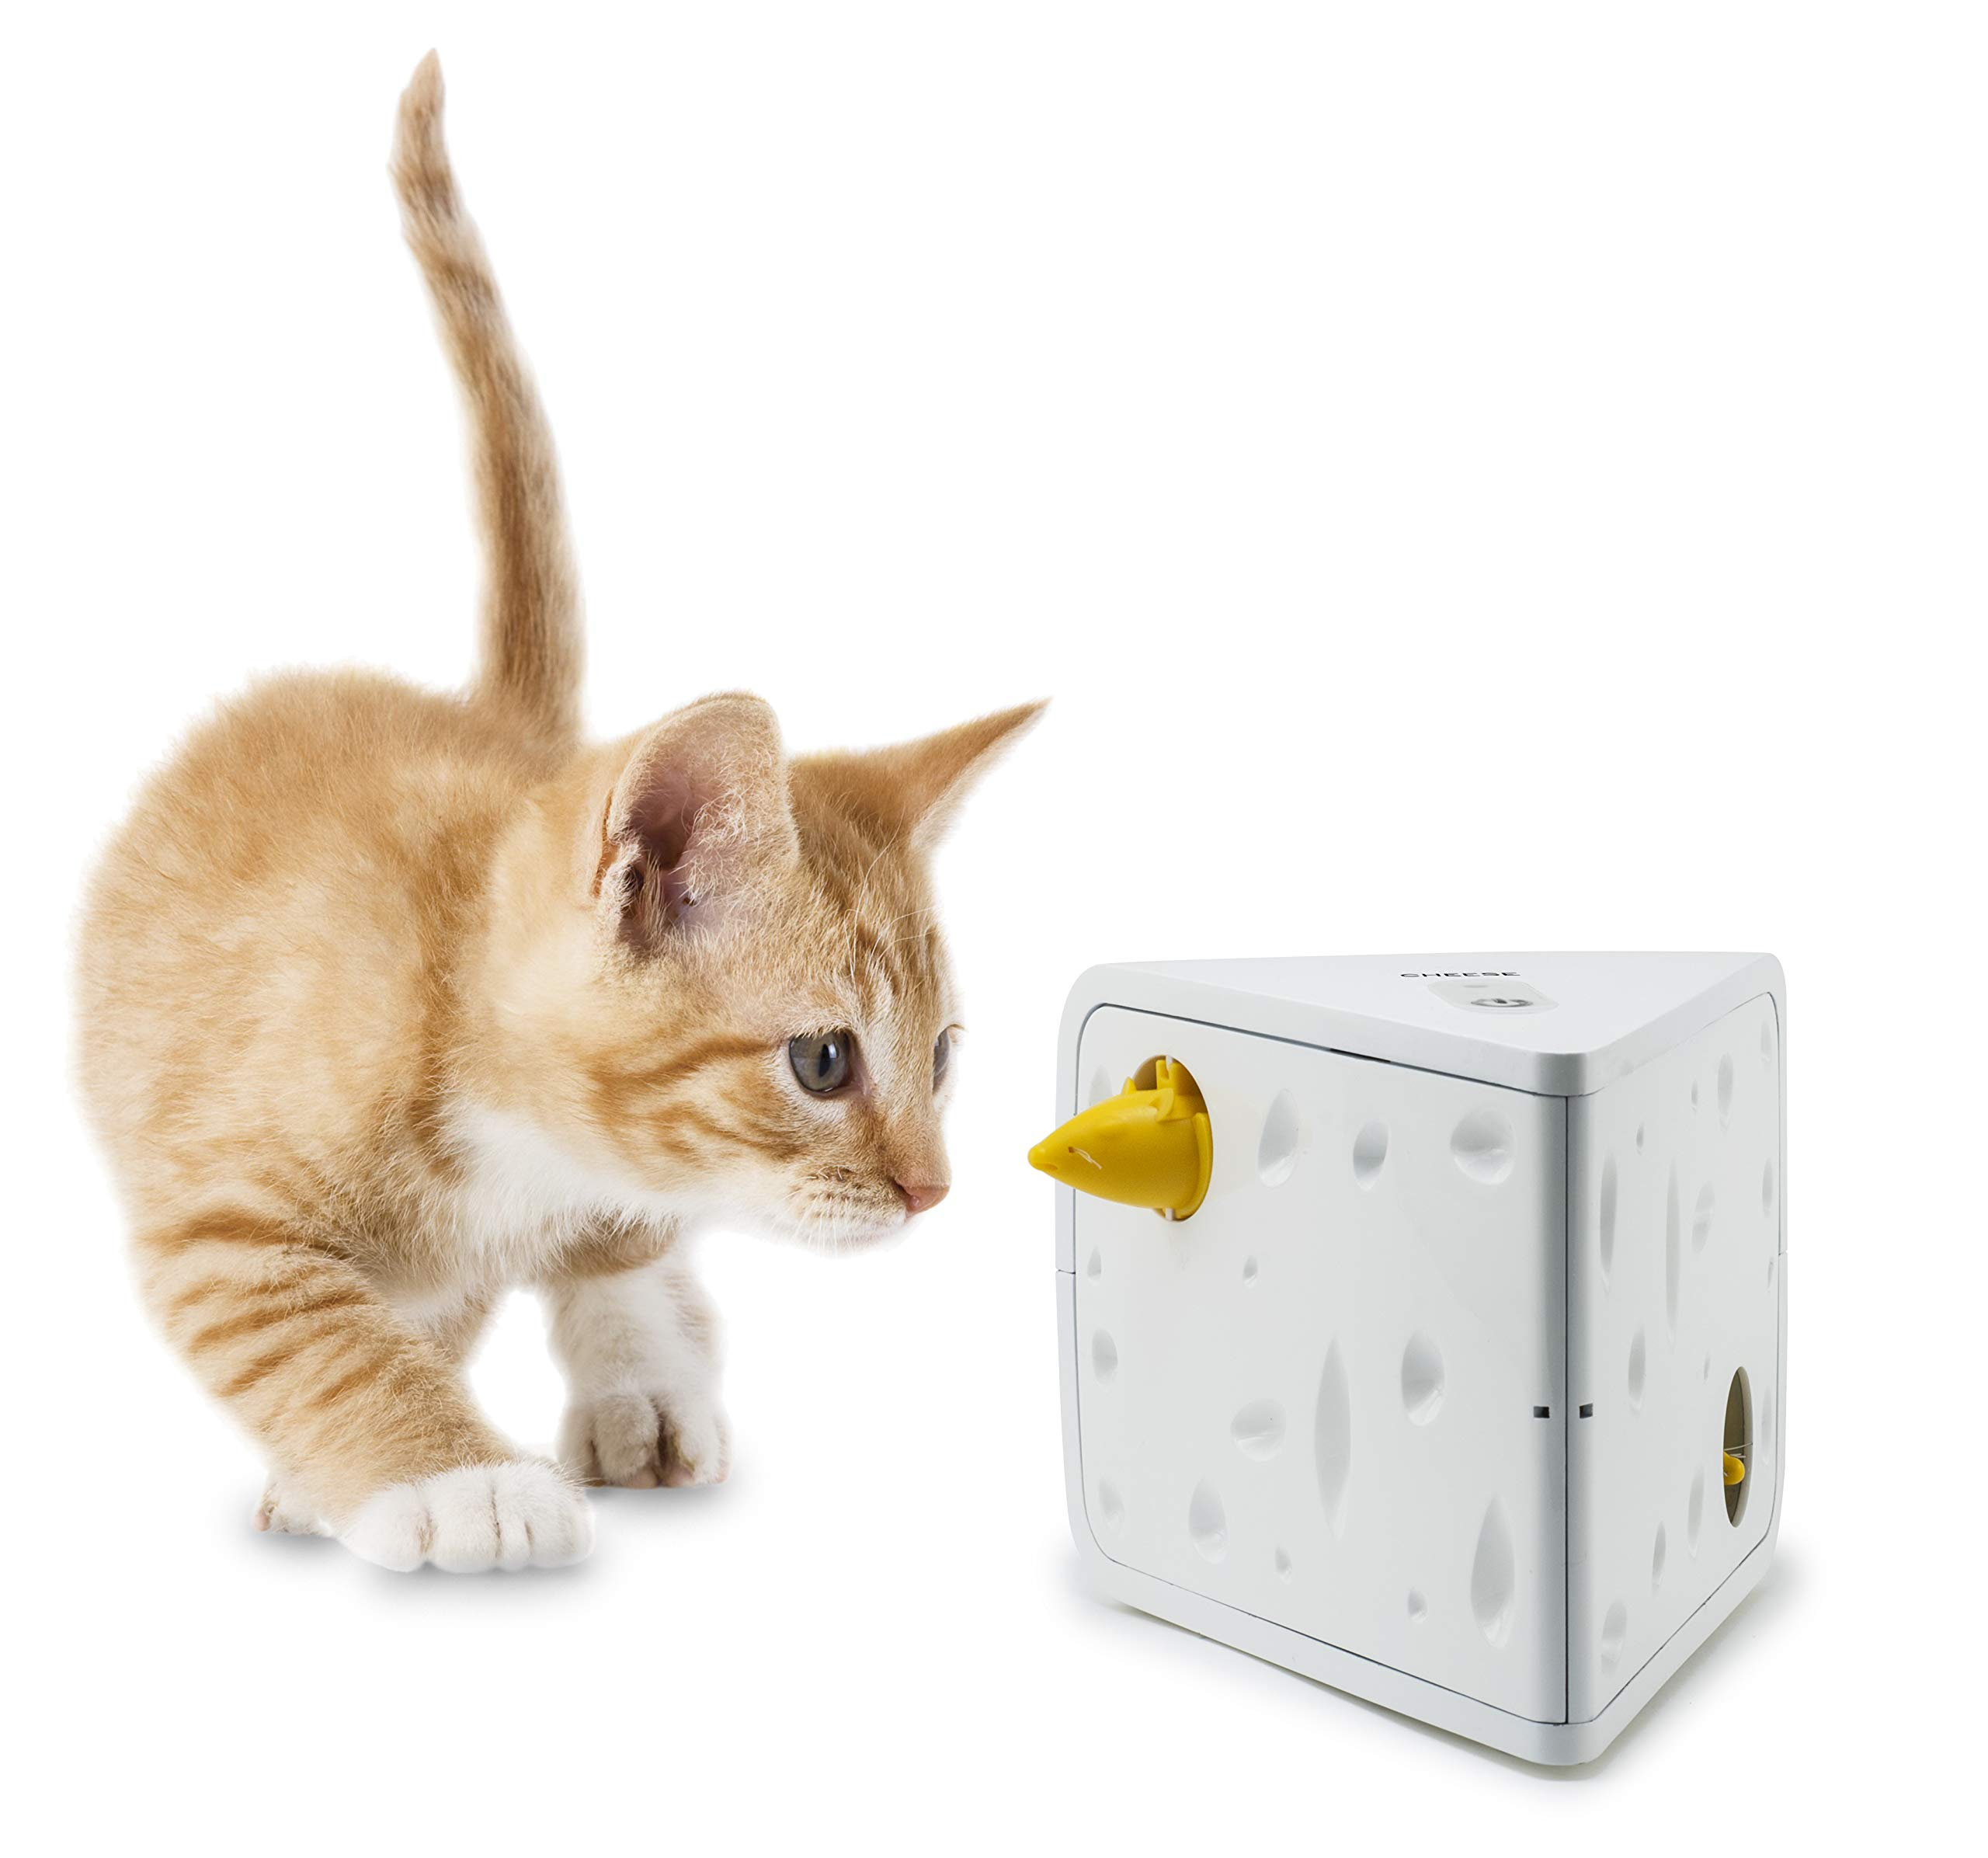 PetSafe-Electronic-Cat-Toys-Automatic-Cheese-and-Peek-A-Bird-Hide-and-Seek-Teaser-Toy-Interactive-Ambush-Bird-and-Mouse-Hunt-Motion-Activated-Fun-for-Kittens